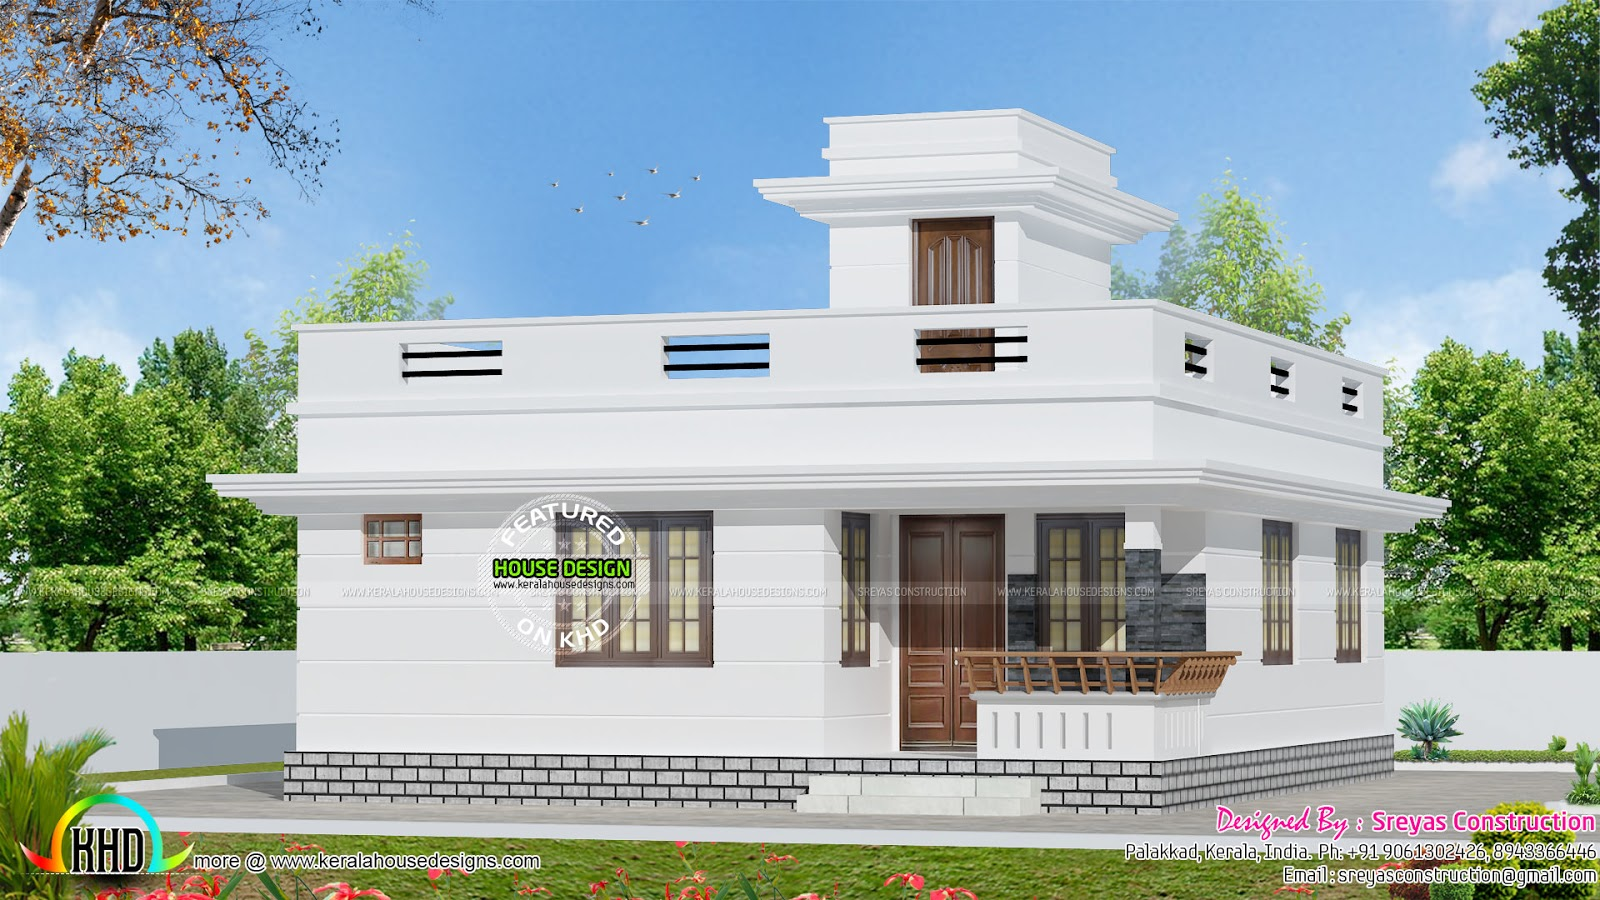 882 sq ft small house architecture kerala home design for Small house design plans in india image